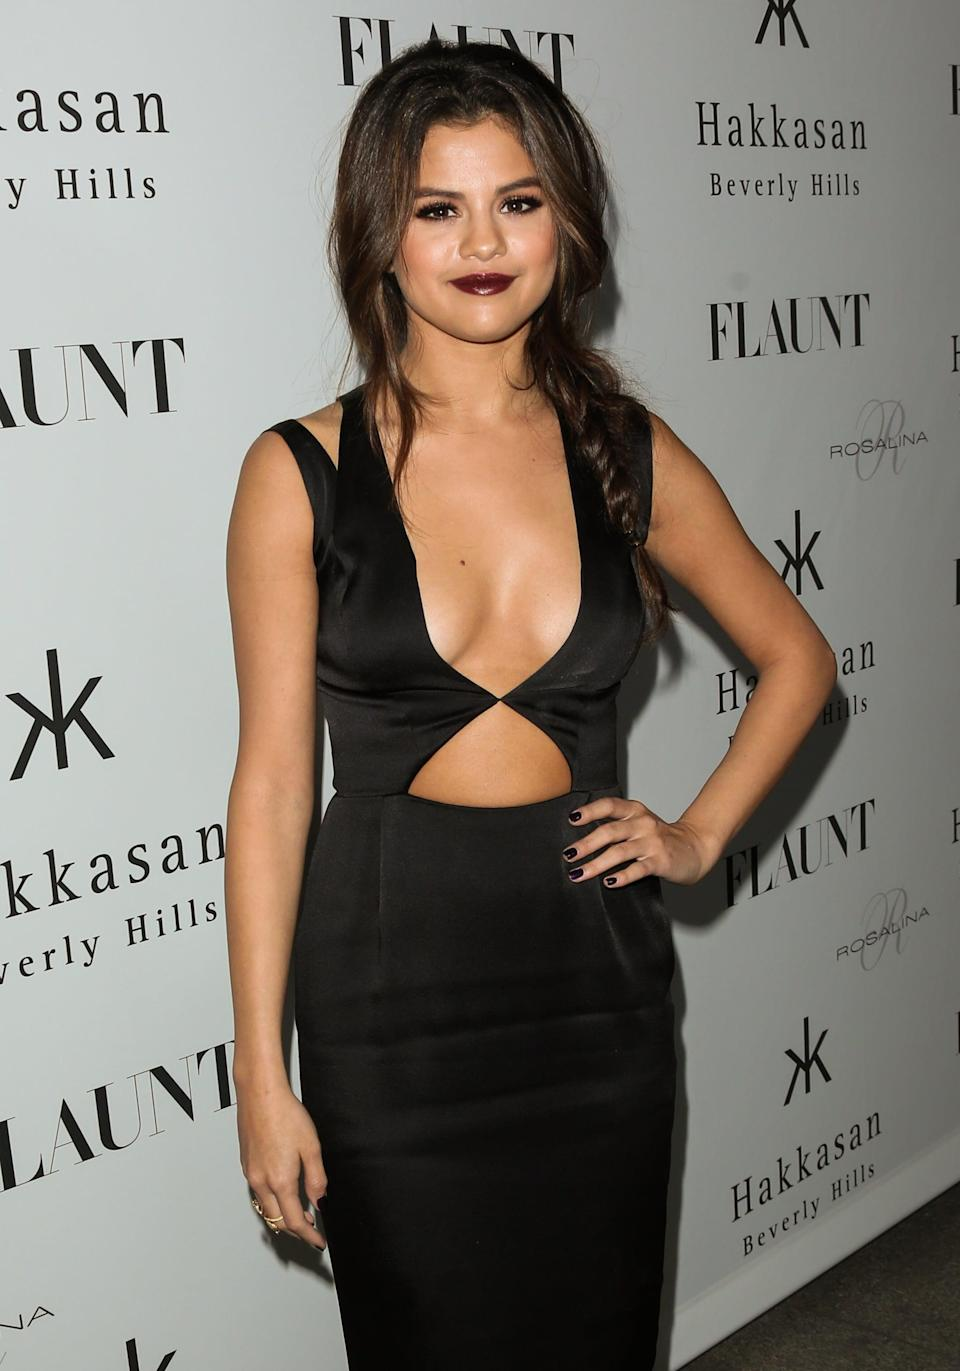 """<p>To launch her supersexy cover <a href=""""http://www.flaunt.com/people/selena-gomez/"""" class=""""link rapid-noclick-resp"""" rel=""""nofollow noopener"""" target=""""_blank"""" data-ylk=""""slk:for Flaunt magazine"""">for Flaunt magazine</a>, Selena wore an equally sultry look at a party in her honor in Beverly Hills, CA.</p>"""